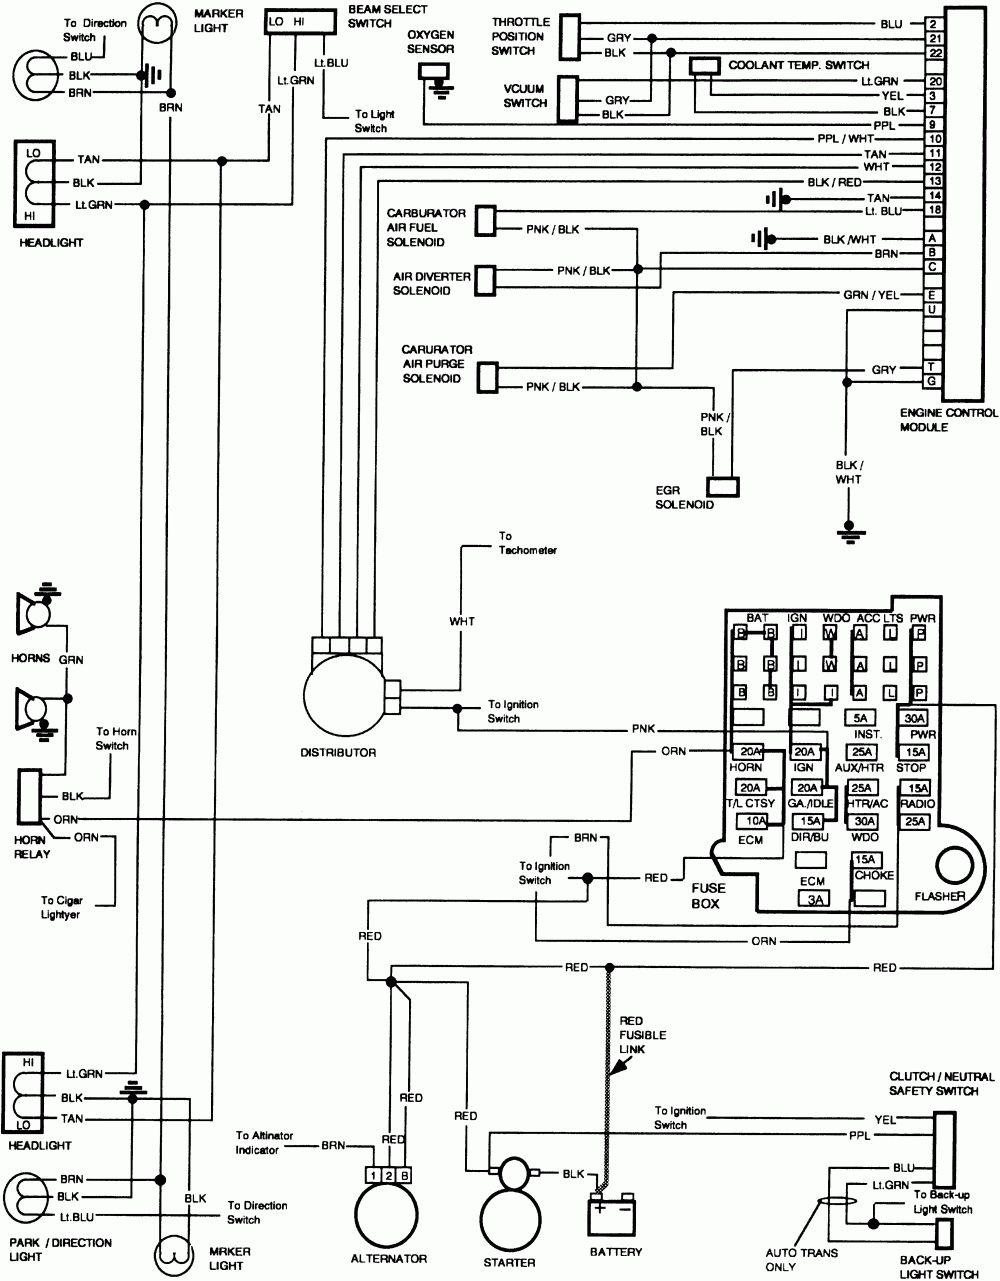 86 Chevy Truck Wiring Diagram Repair Guides Wiring Diagrams Wiring Diagrams Autozone In 1986 Chevy Truck Wir 1985 Chevy Truck 1986 Chevy Truck 1984 Chevy Truck